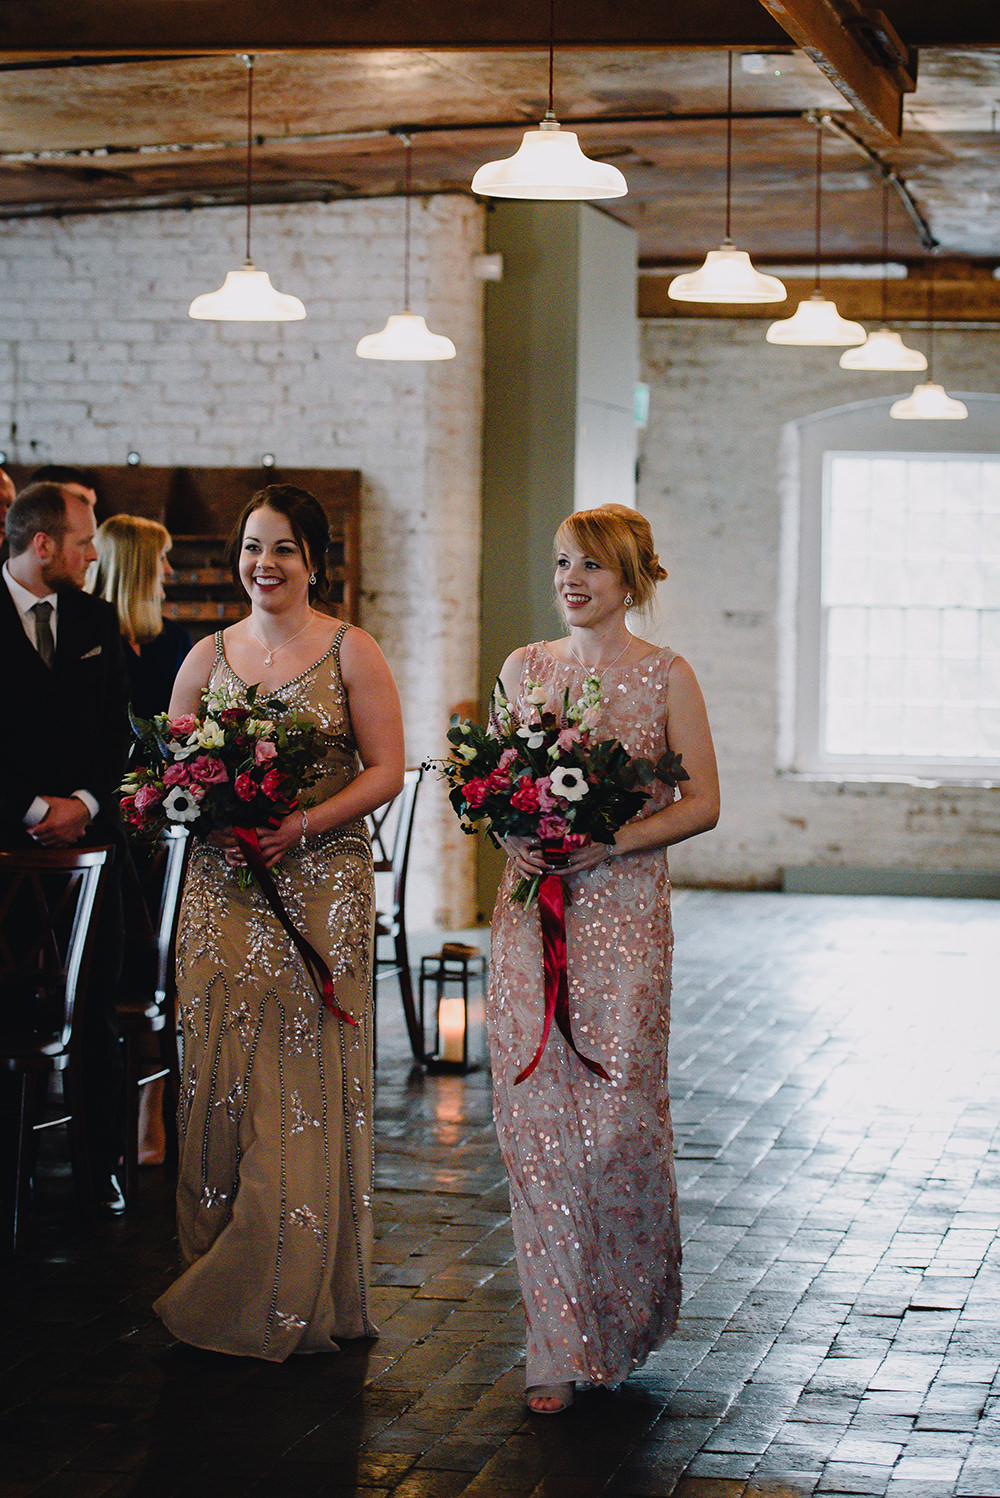 Mismatched Sequin Bridesmaid Dresses Industrial Winter Wedding Reality Photography